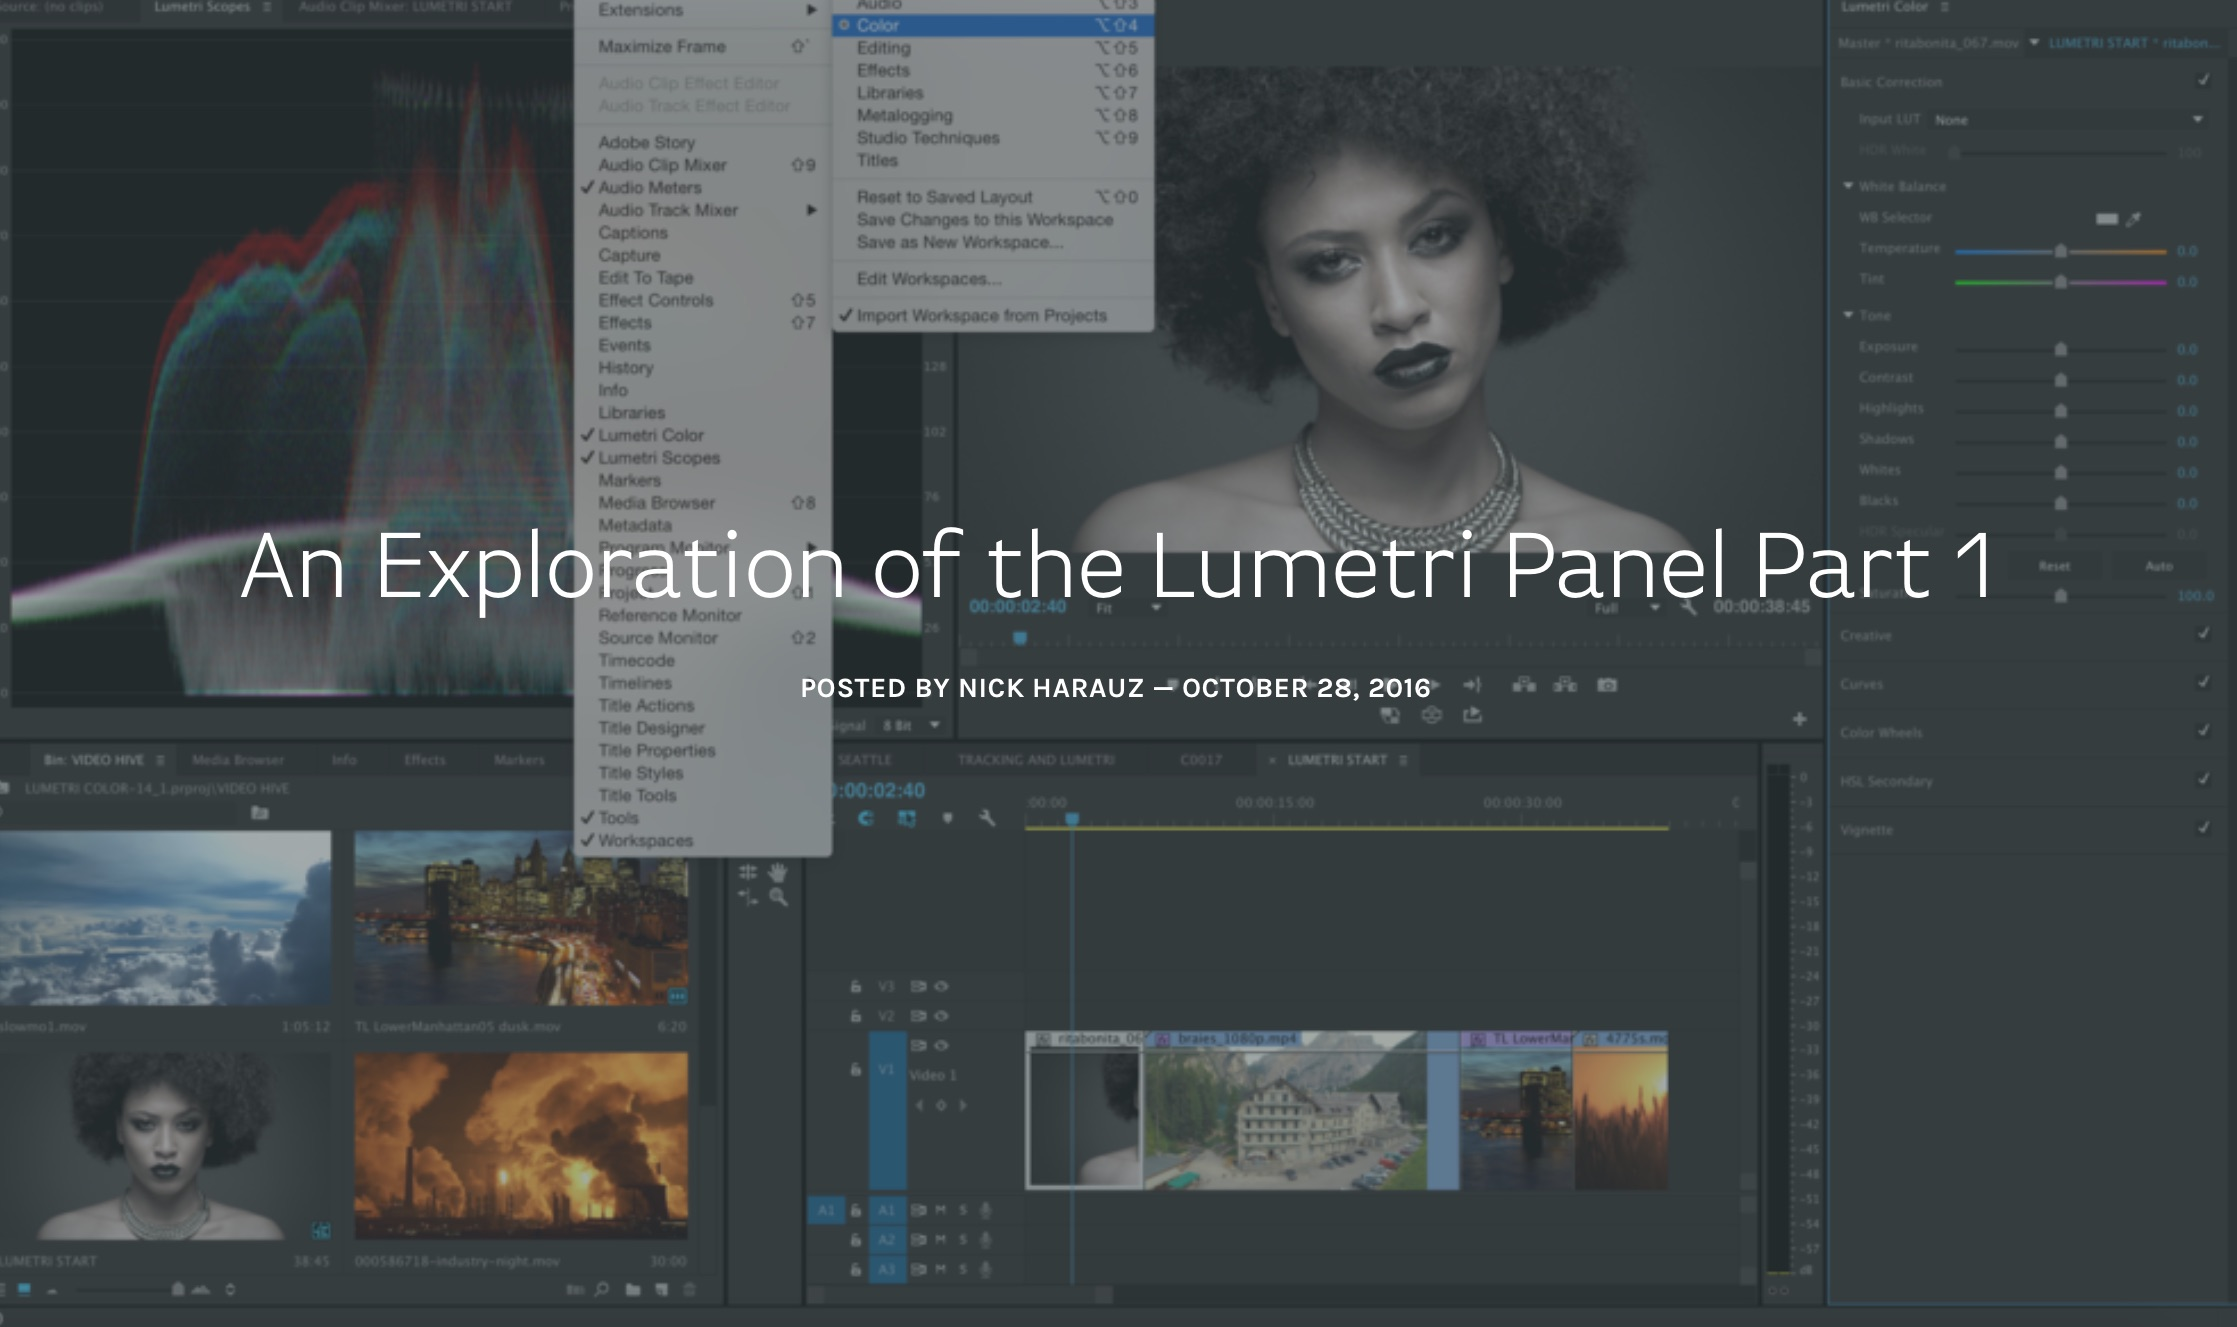 Screenlight-An-Exploration-of-the-Lumetri-Panel-Part-1-Nick-Harauz.png